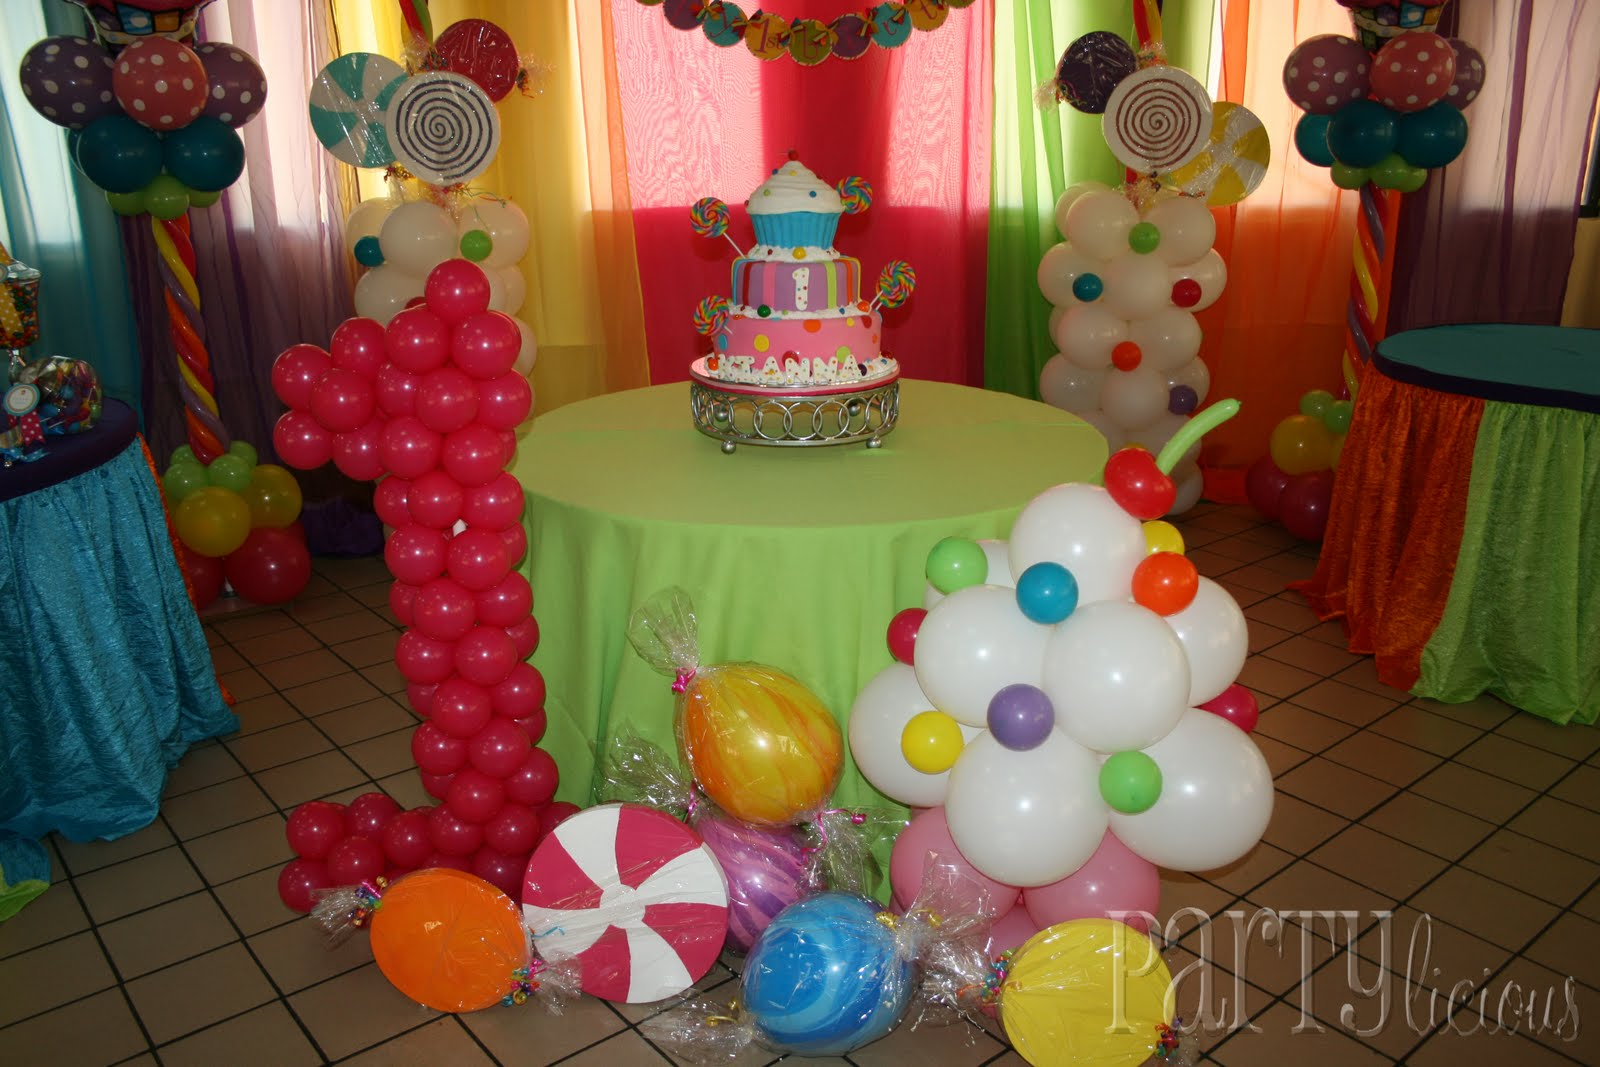 Partylicious events pr sweet 1st birthday candy cupcakes for Balloon decoration for 1st birthday